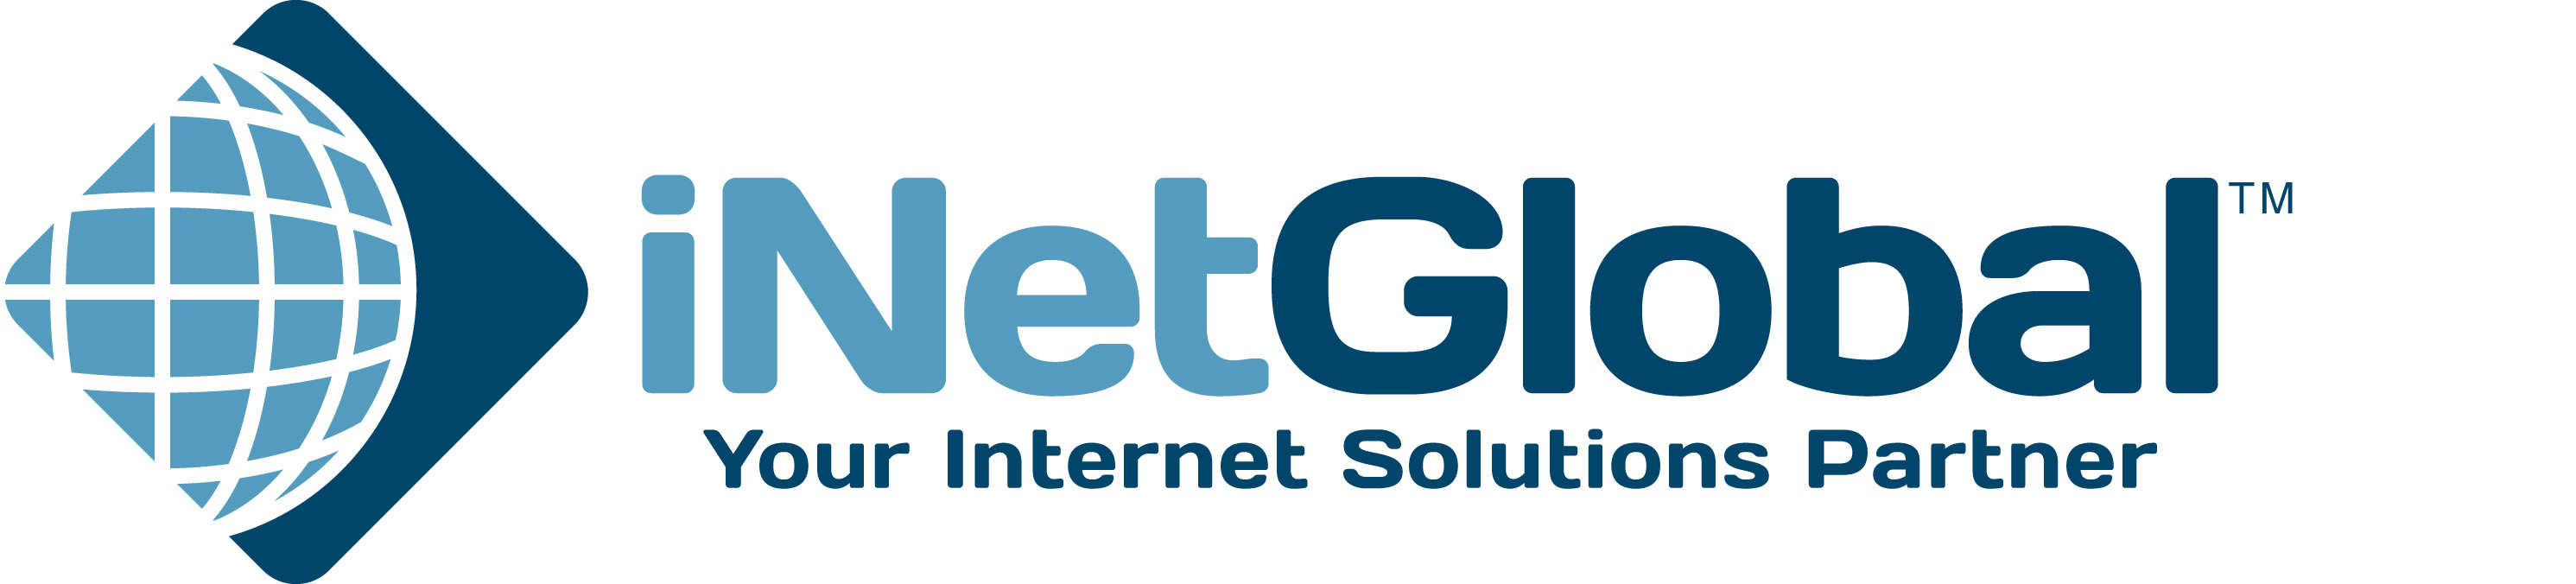 iNetGlobal Internet Services for Business